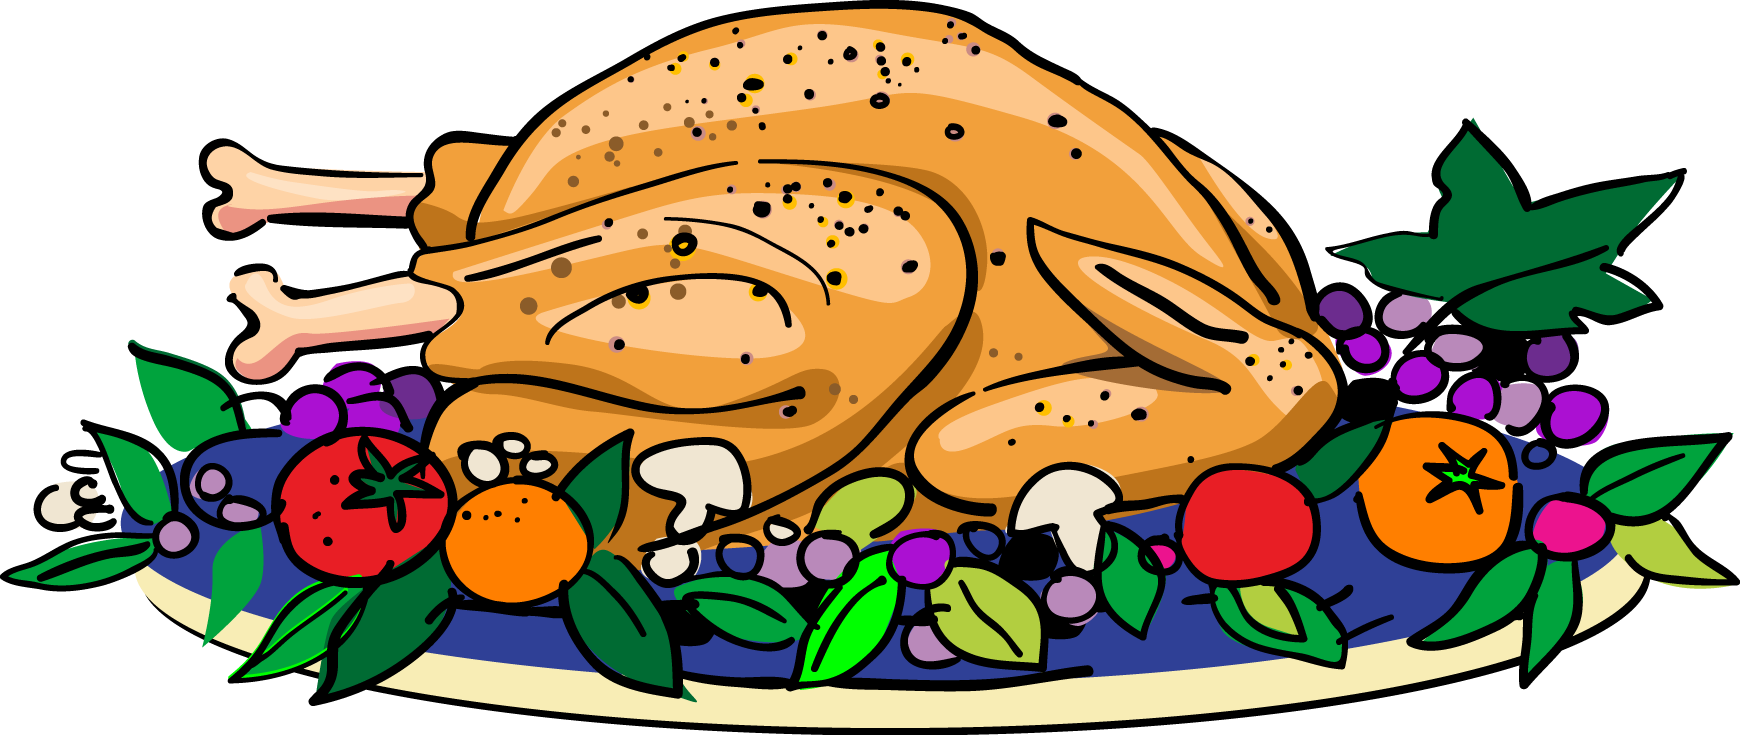 17 Roasted Turkey Clipart Free Cliparts That You Can Download To You